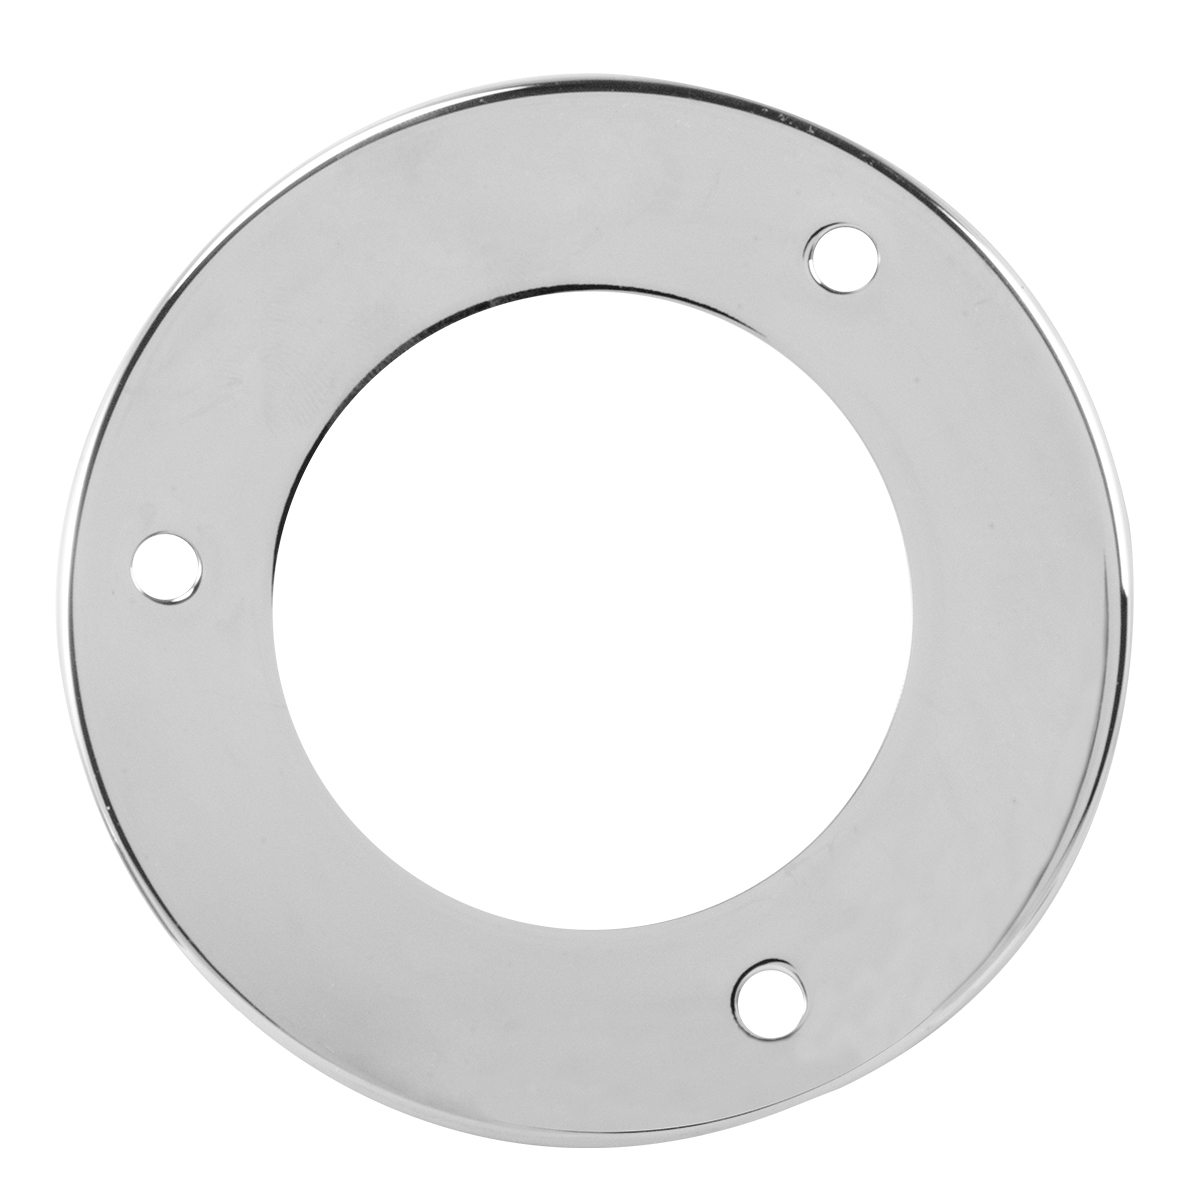 "87211 Stainless Steel Security Ring for 2.5"" Round Light"